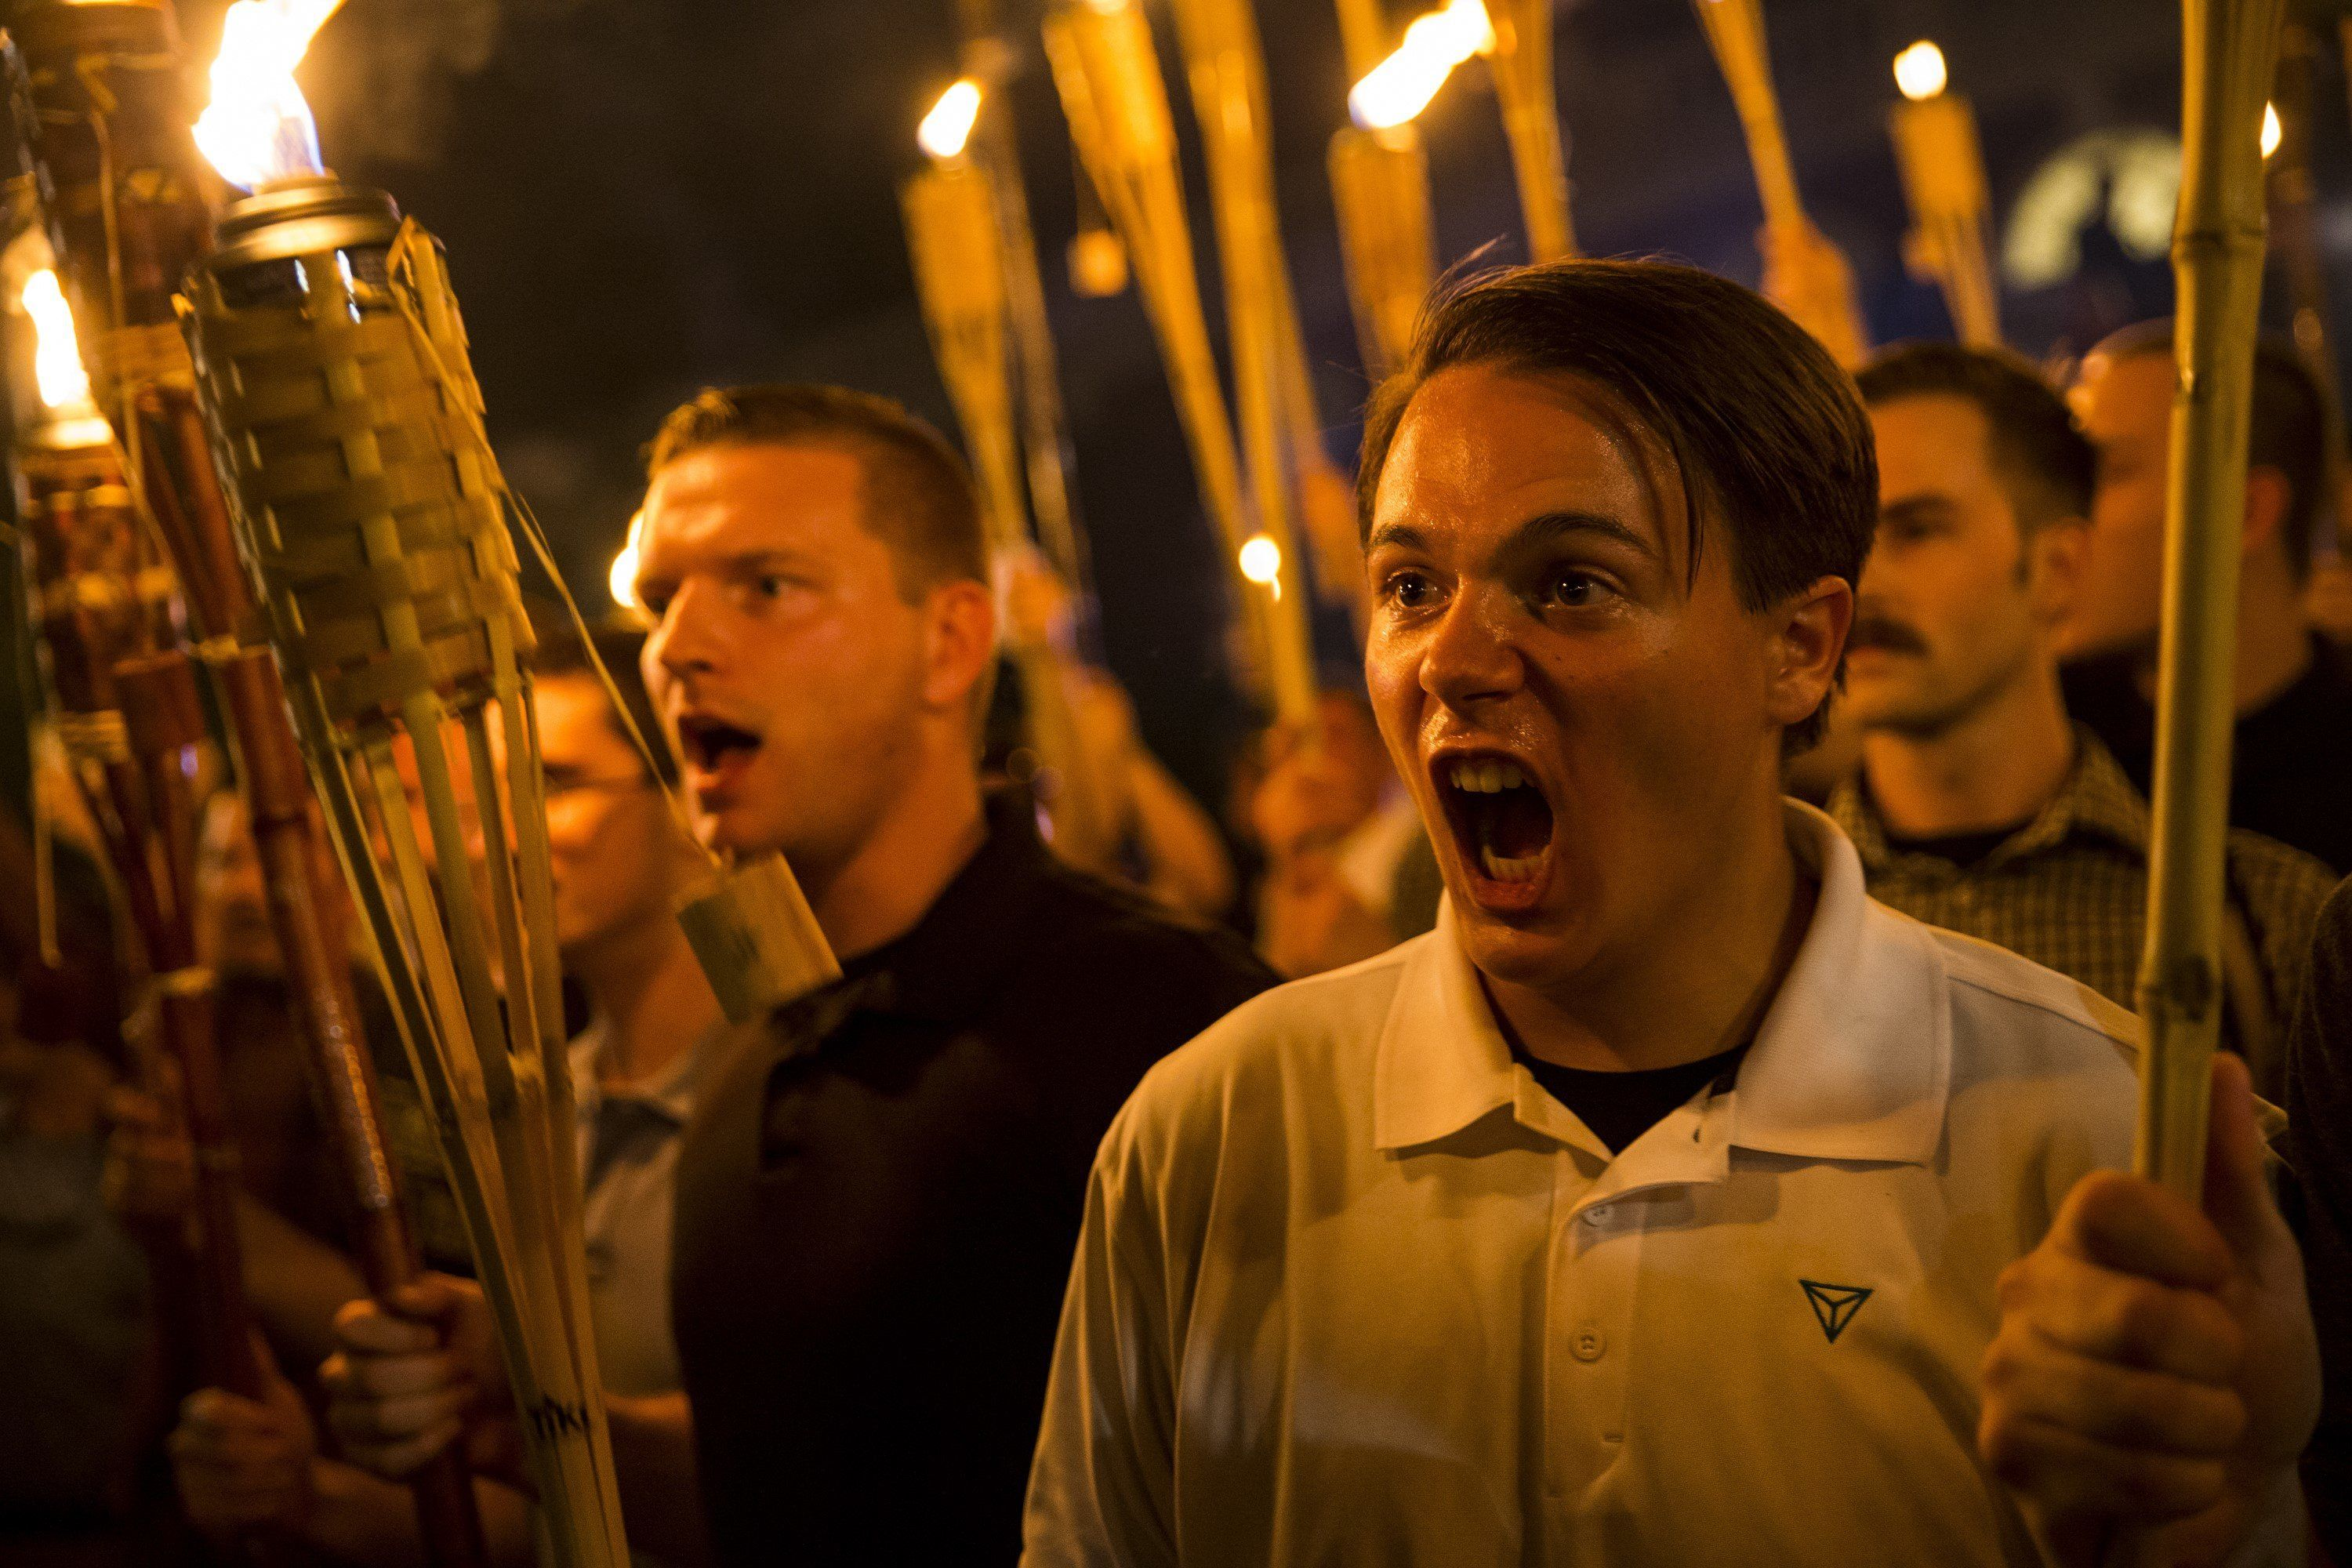 Chilling Scenes As Torch-Bearing Right-Wing Protestors March Through US